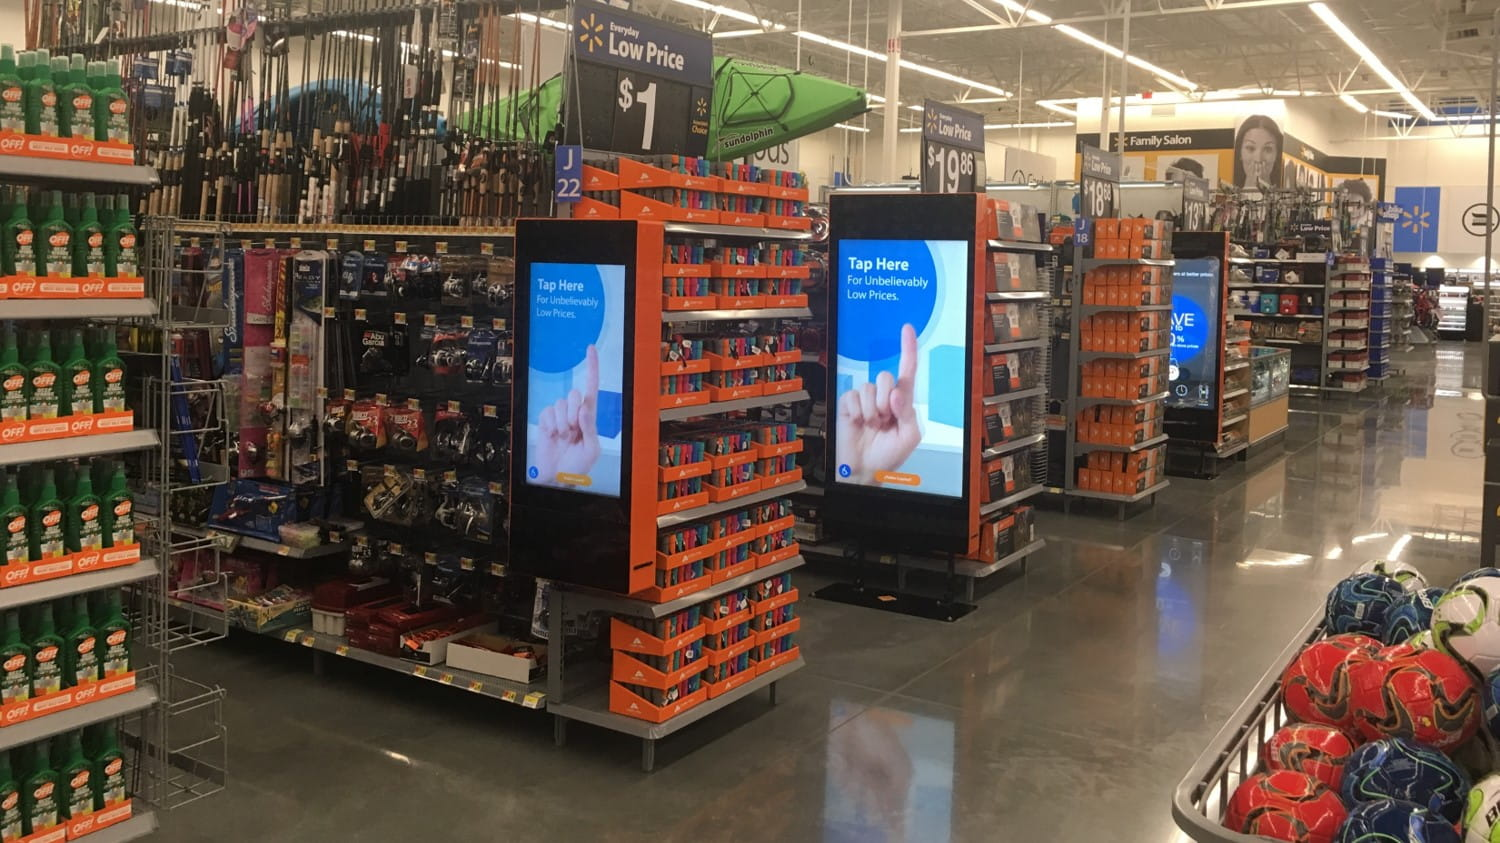 WestRock advanced digital retail displays at WalMart